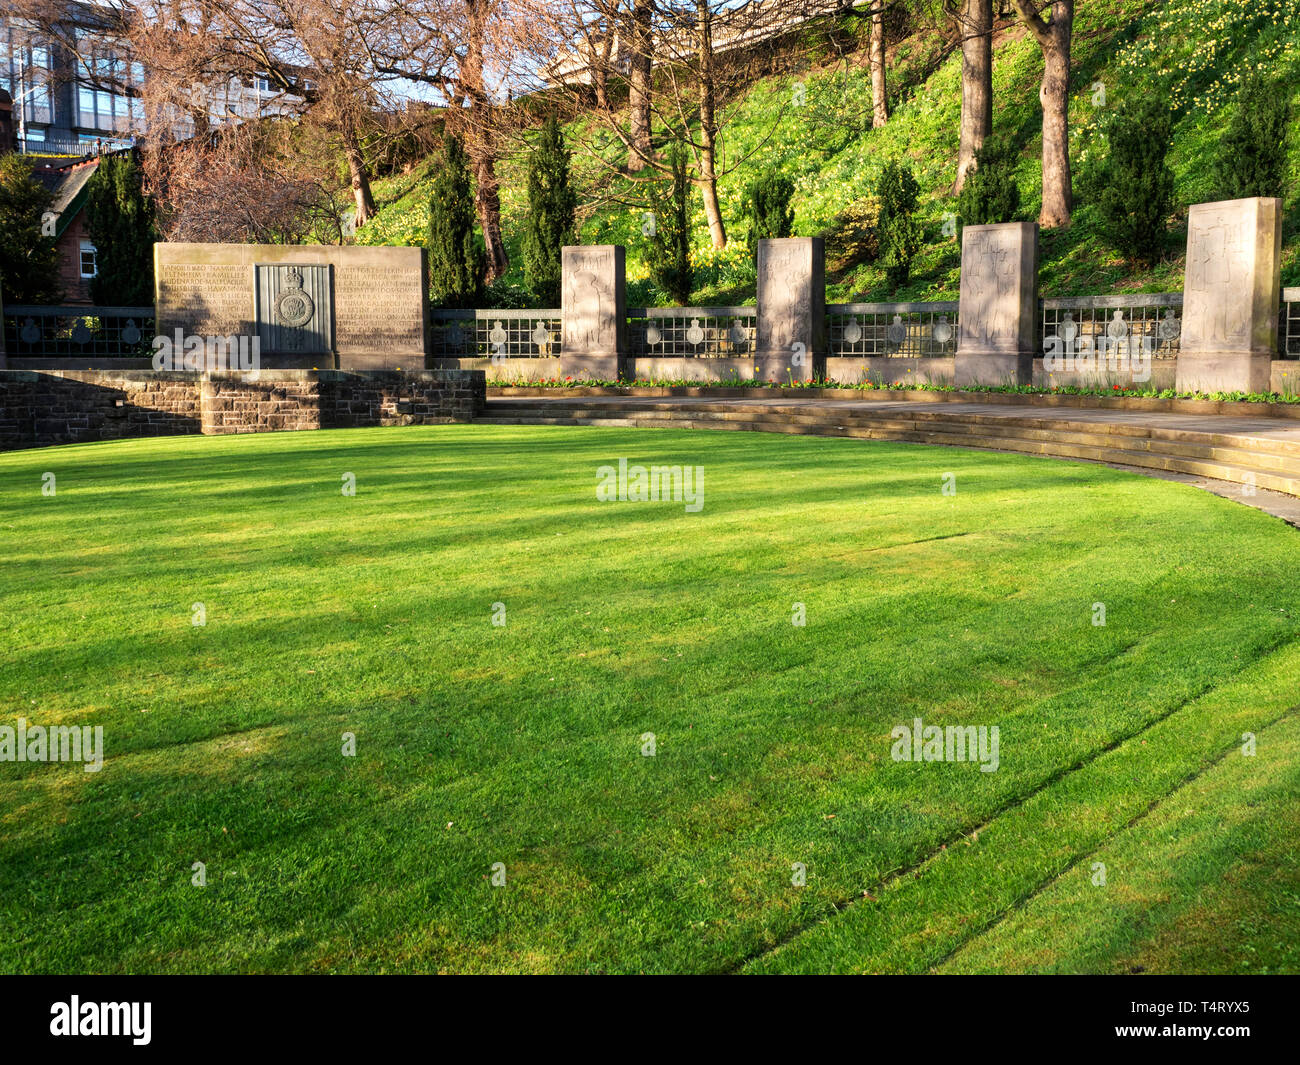 Royal Scots Monument in West Princes Street Gardens Edinburgh Scotland - Stock Image